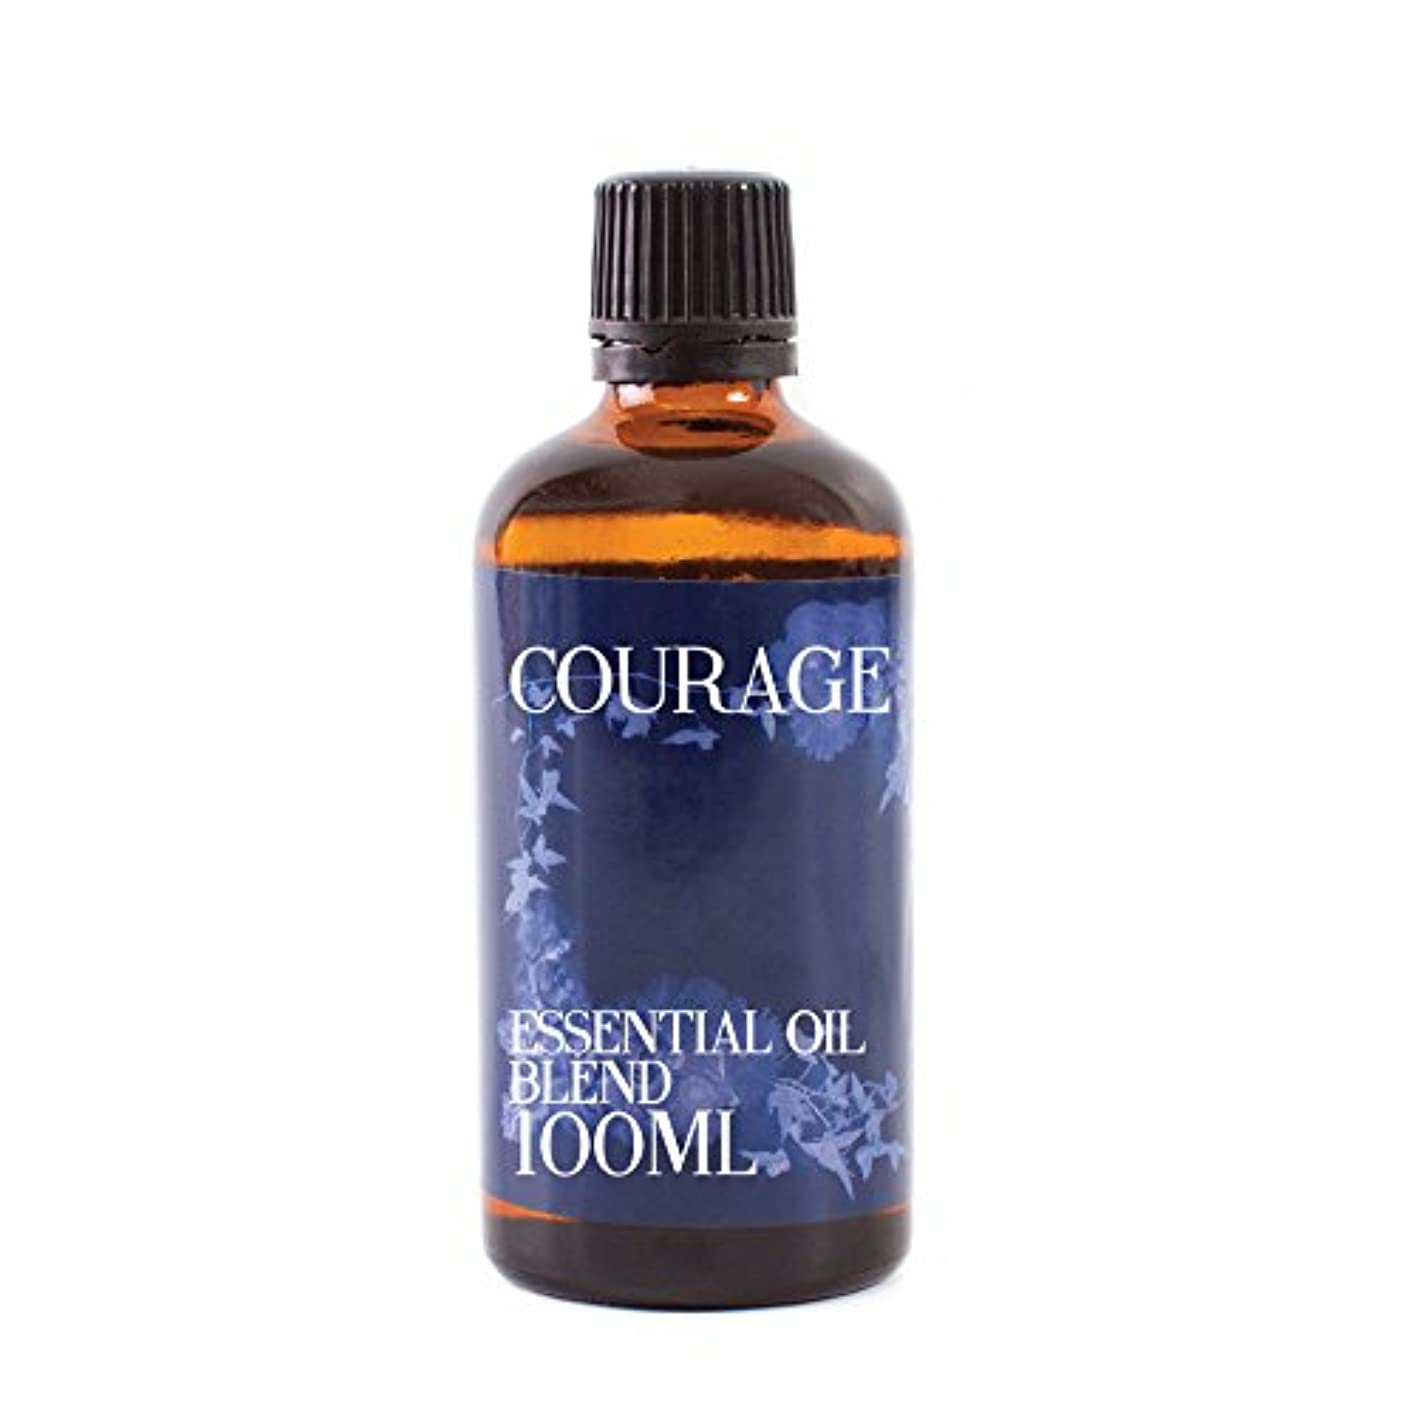 Mystic Moments | Courage Essential Oil Blend - 100ml - 100% Pure